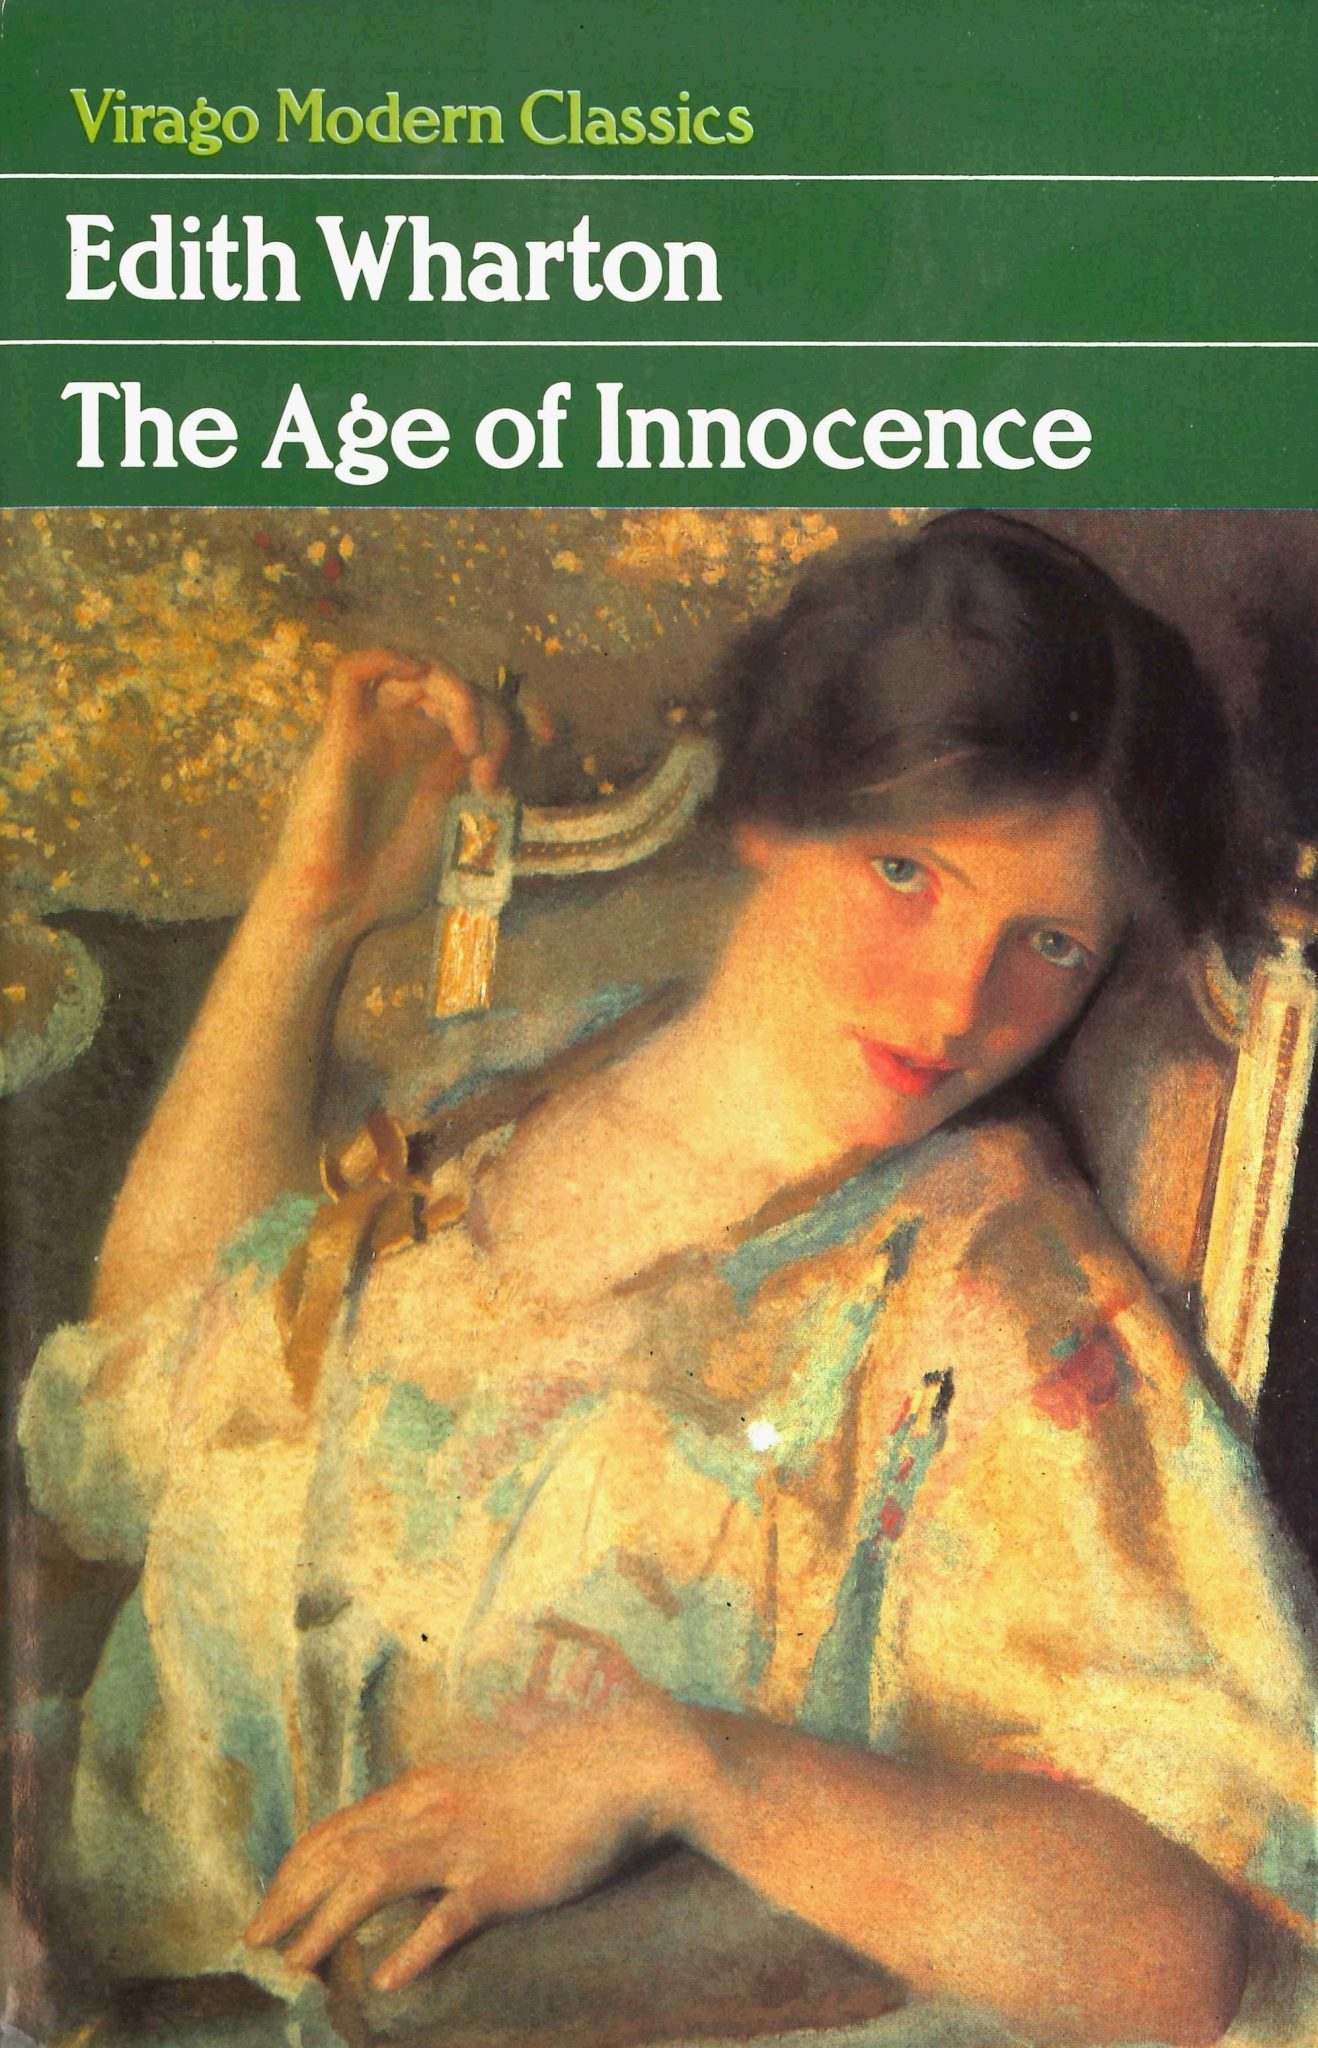 an analysis of the theme of mortality in edith wharthons age of innocence Values by the time edith wharton wrote the age of innocence, she had seen world war i destroy much of the world as she knew it she looked back on her.